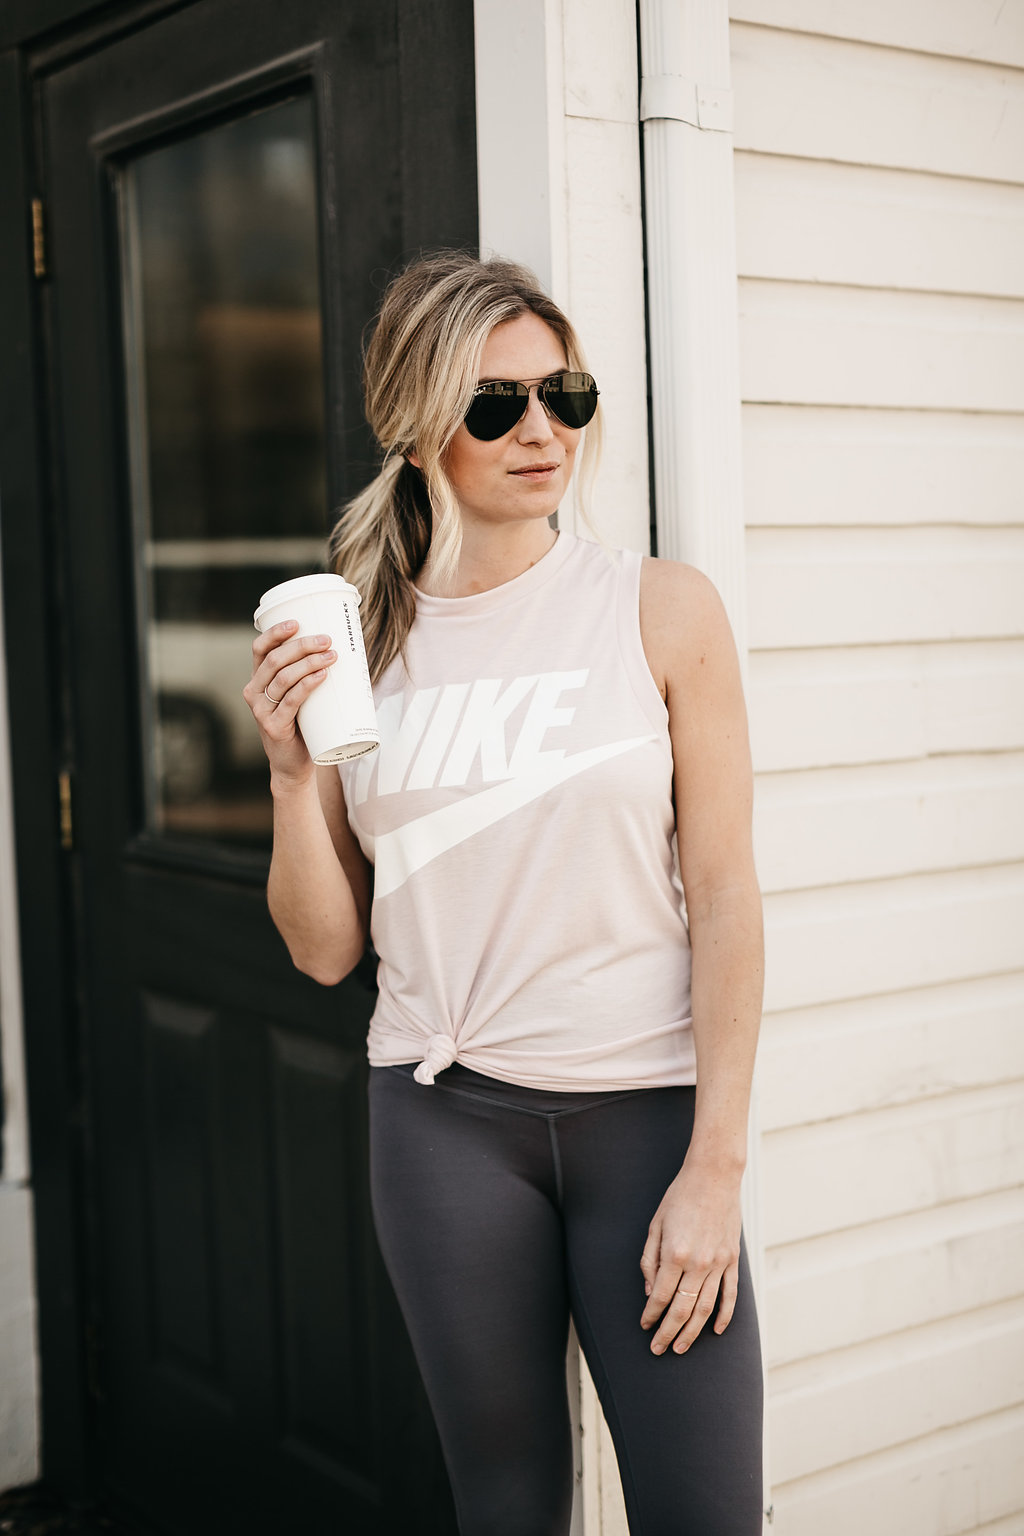 Nike muscle tank paired with Zella color block leggings